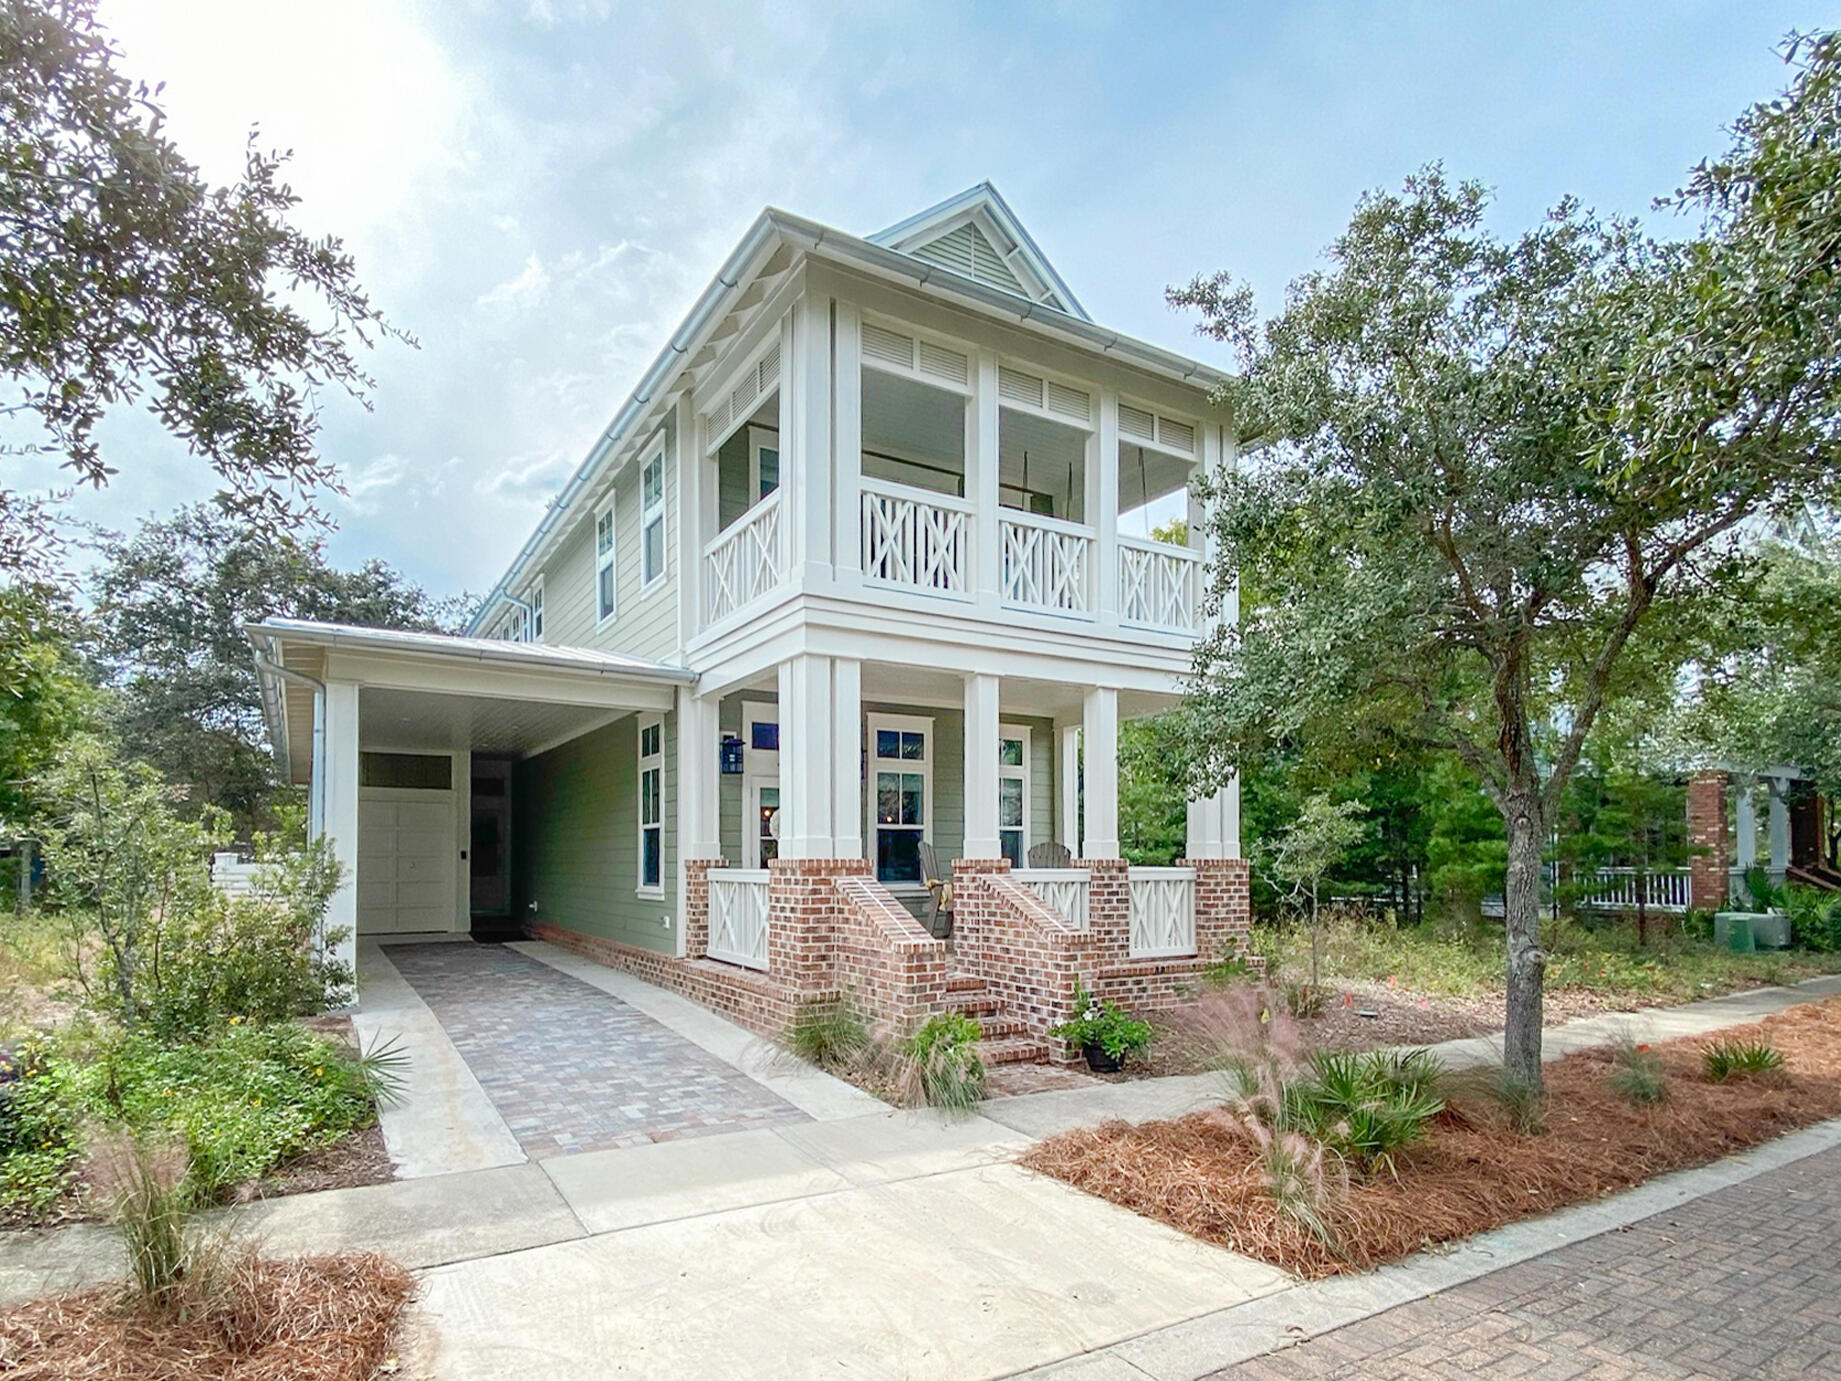 Accepting Backup Offers Relax at this beautiful home in Forest Lakes along beautiful 30A. With two master suites - one on each level - and two additional bedroom suites, this inviting home has ample room for the whole family and makes for a fantastic vacation home or primary residence. The main level features an open floorplan. The living room, dining area, and kitchen all flow together making for a great gathering place. The kitchen is a chef's dream with a Wolf range, wine cooler, two sinks, and large island that seats six. The downstairs master suite is tucked quietly towards the back of the house. The upstairs master suite is spacious and features a private porch with a large couch swing - a lovely place to sip your morning coffee or settle in with a good book. Both master baths feature soaking tubs and separate showers. Two guest suites are also located upstairs, one with two sets of bunk beds, the other a king bed. This home features stunning finishes, furnishings, and serene coastal décor. Forest Lakes is a gated community just minutes from the beach and has amenities including a two-tiered pool, gathering pavilion with outdoor kitchen and fireplace, stocked lakes for catch and release fishing, playground, walking paths, and beautiful surroundings. A beautiful paradise! This home would make an excellent investment property with annual rental projections showing $92k+!